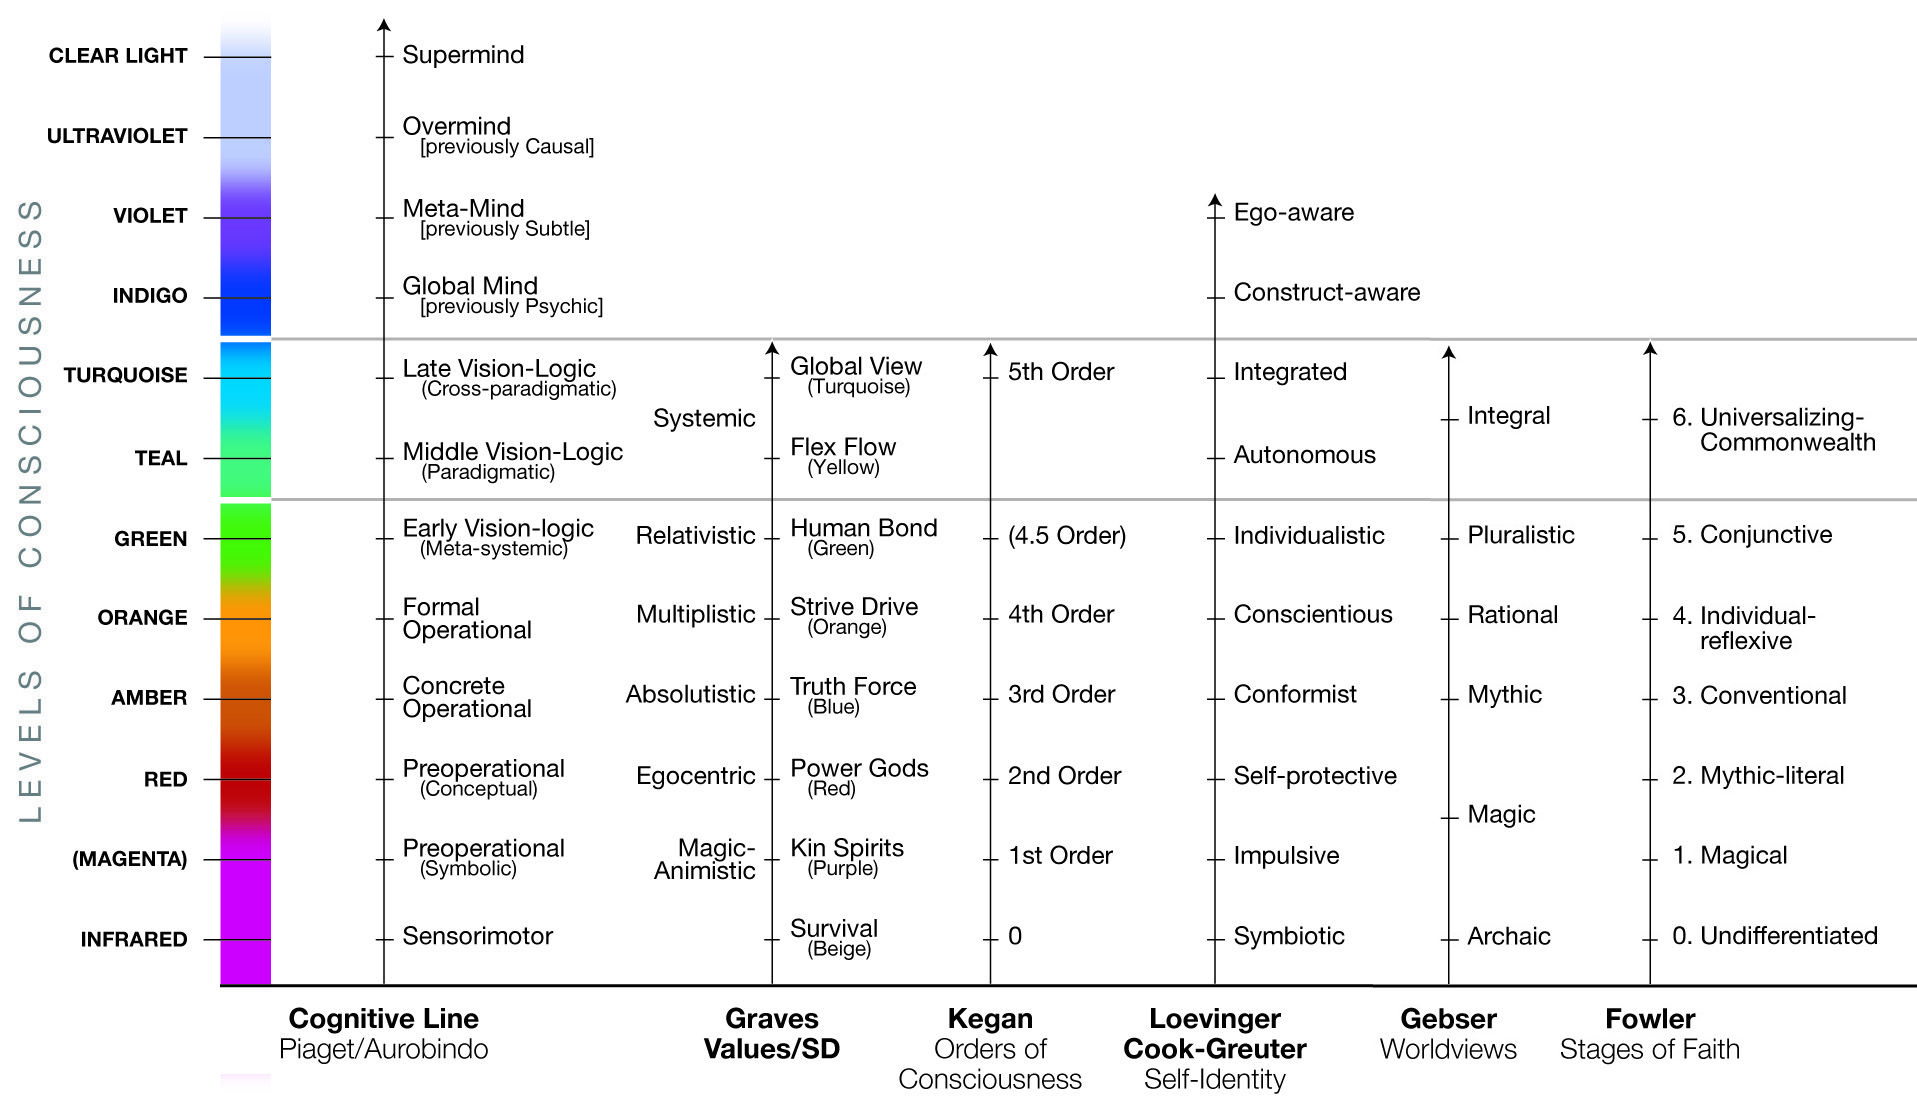 We Have Drawn A Simple Graph Showing The Major Stages Or Levels Of Development Arranged